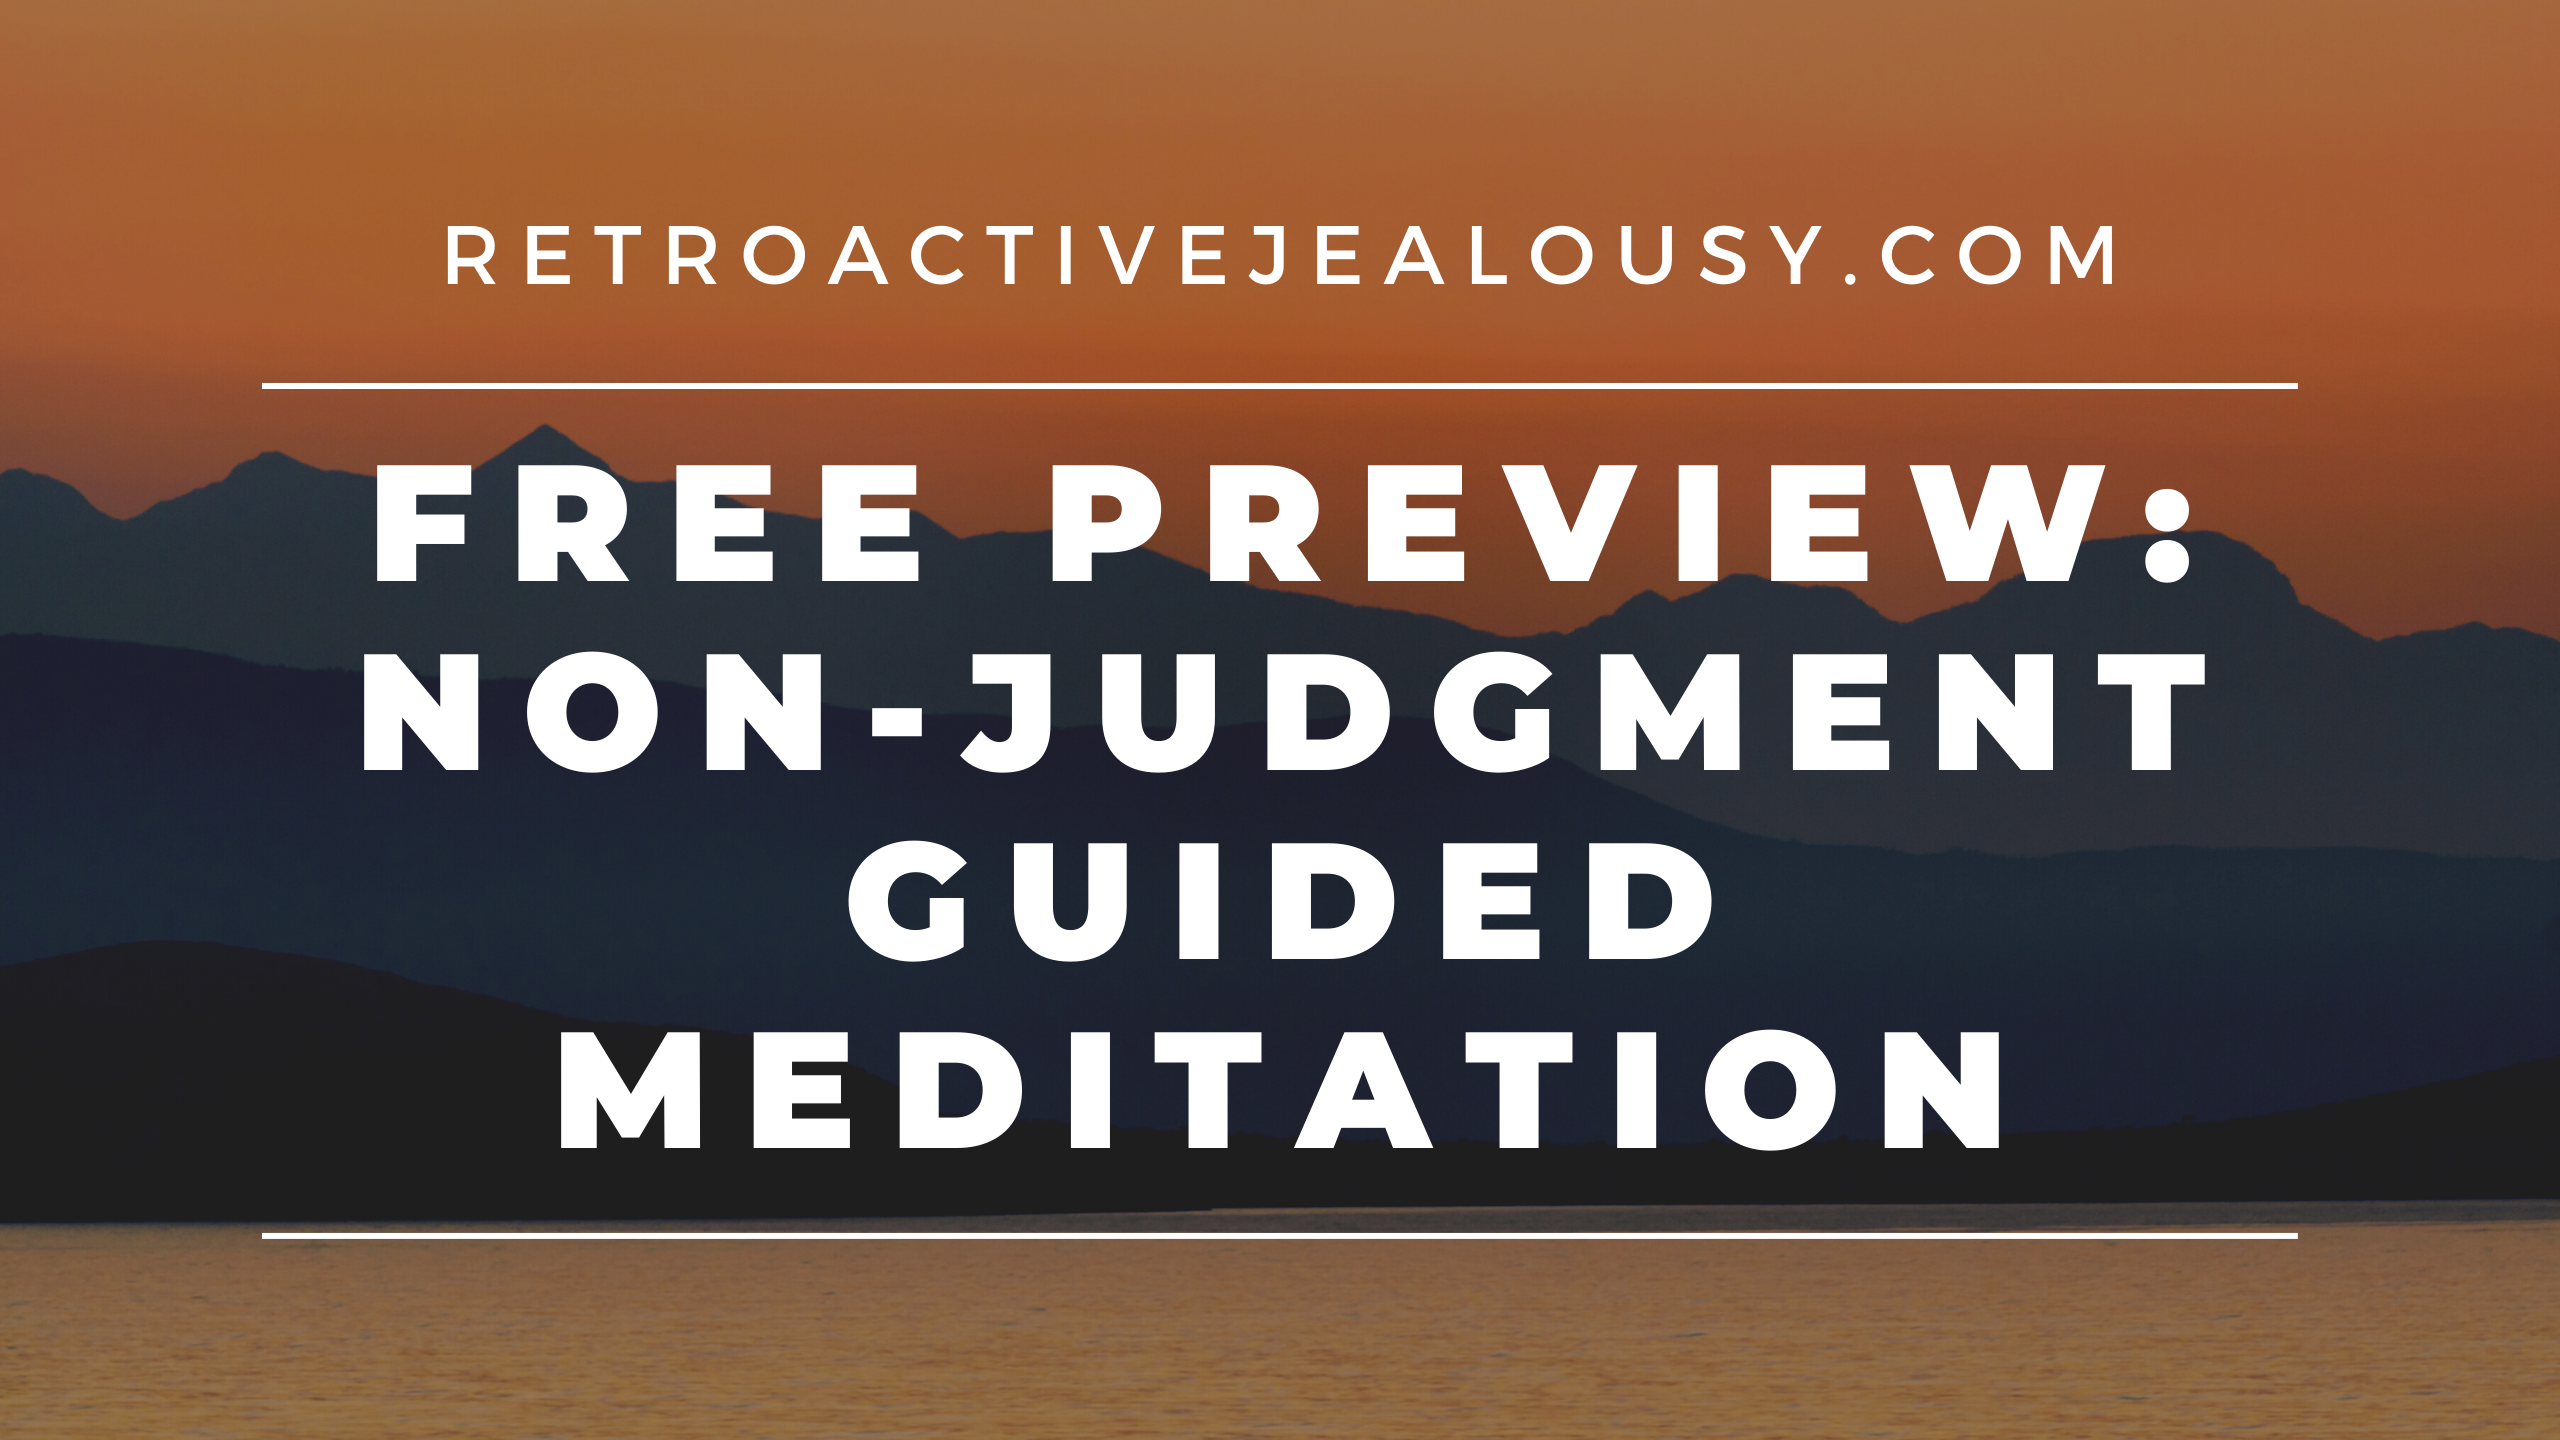 A (Free!) Non-Judgment Meditation for Overcoming Retroactive Jealousy